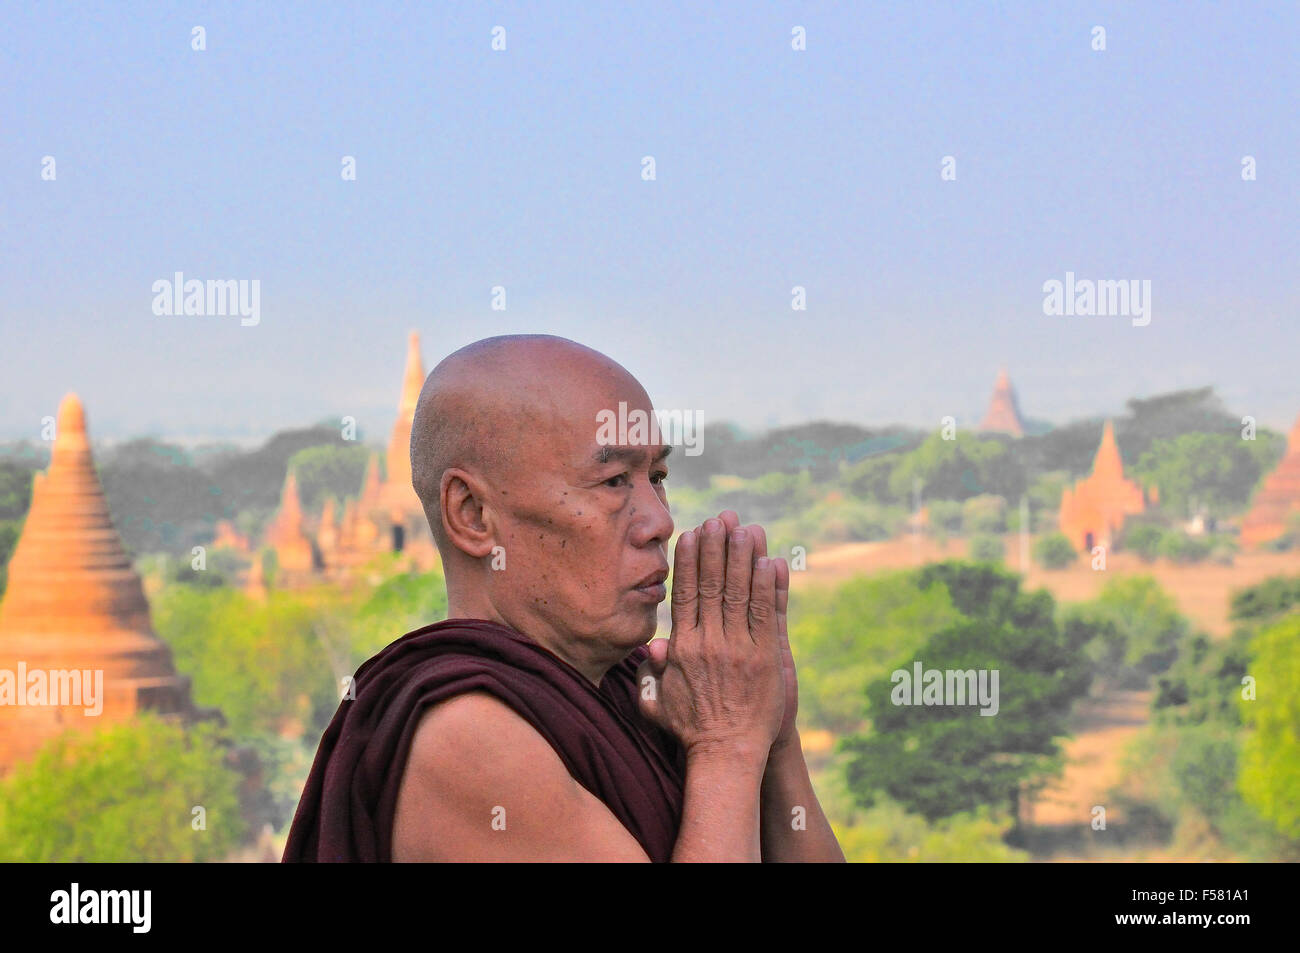 Buddhist Monk praying on top of   the  Shwesandaw Pagoda in Bagan, Burma (Myanmar) - Stock Image